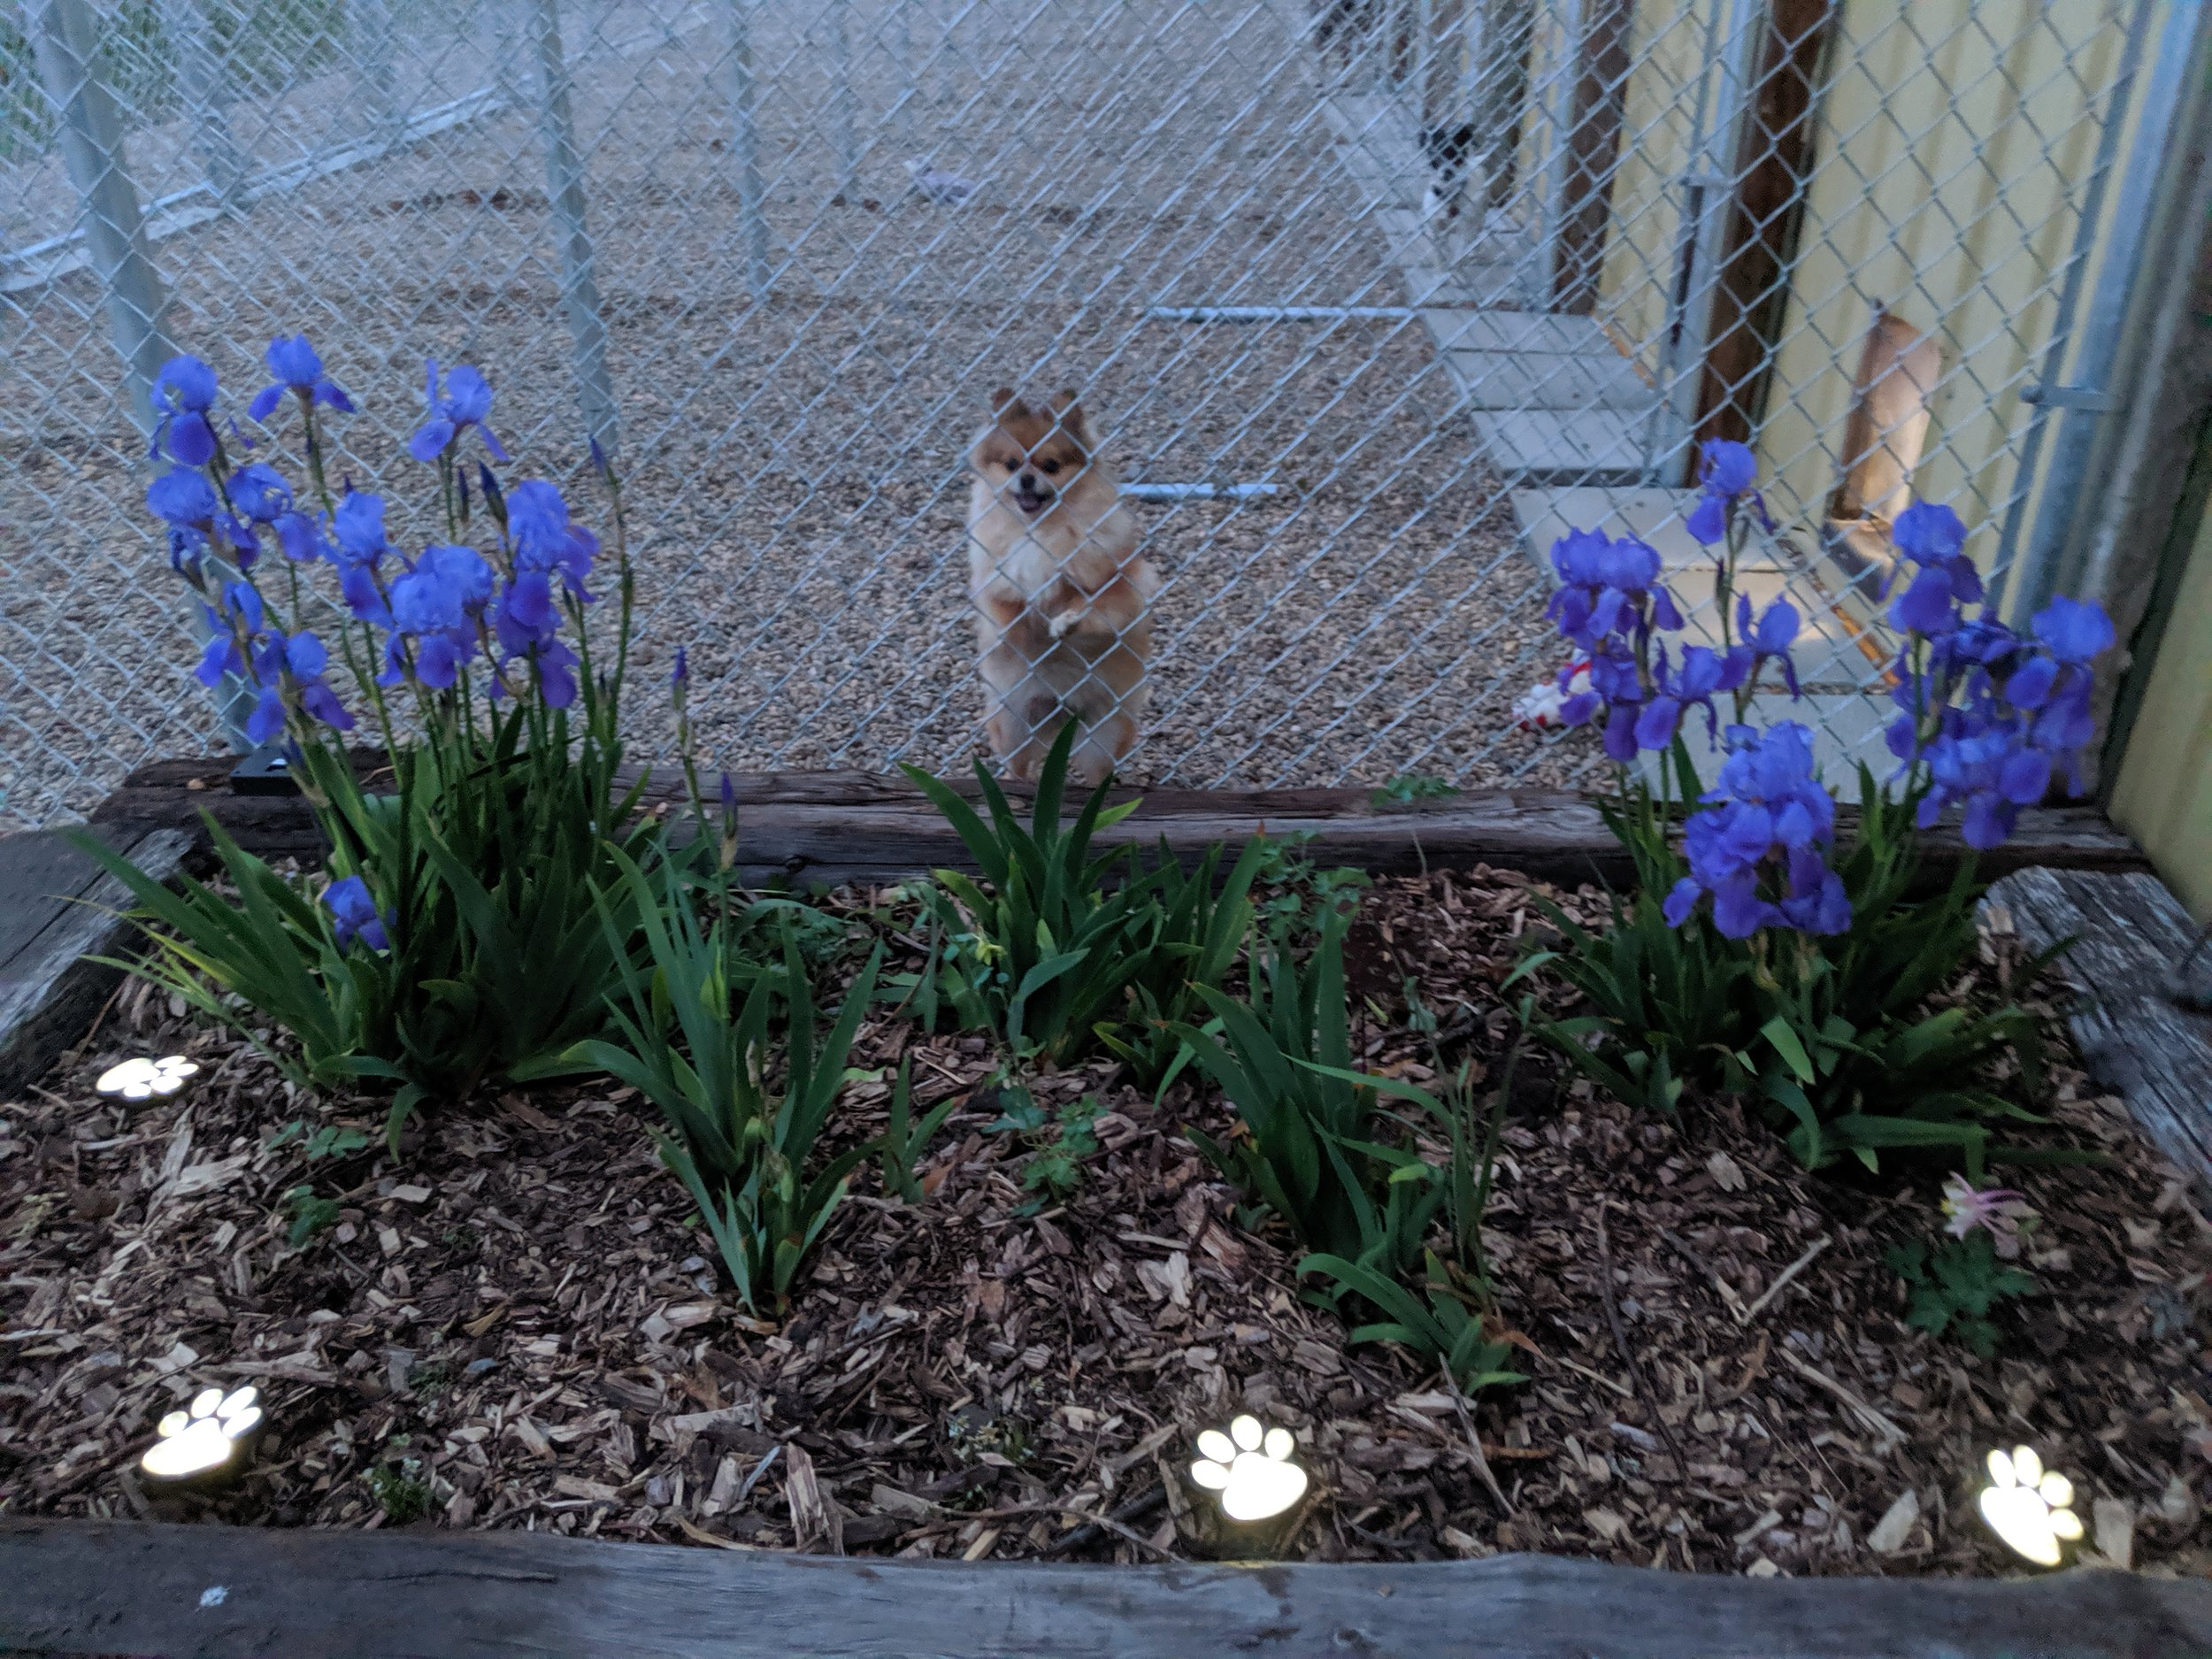 Sadie approves the new solar lights